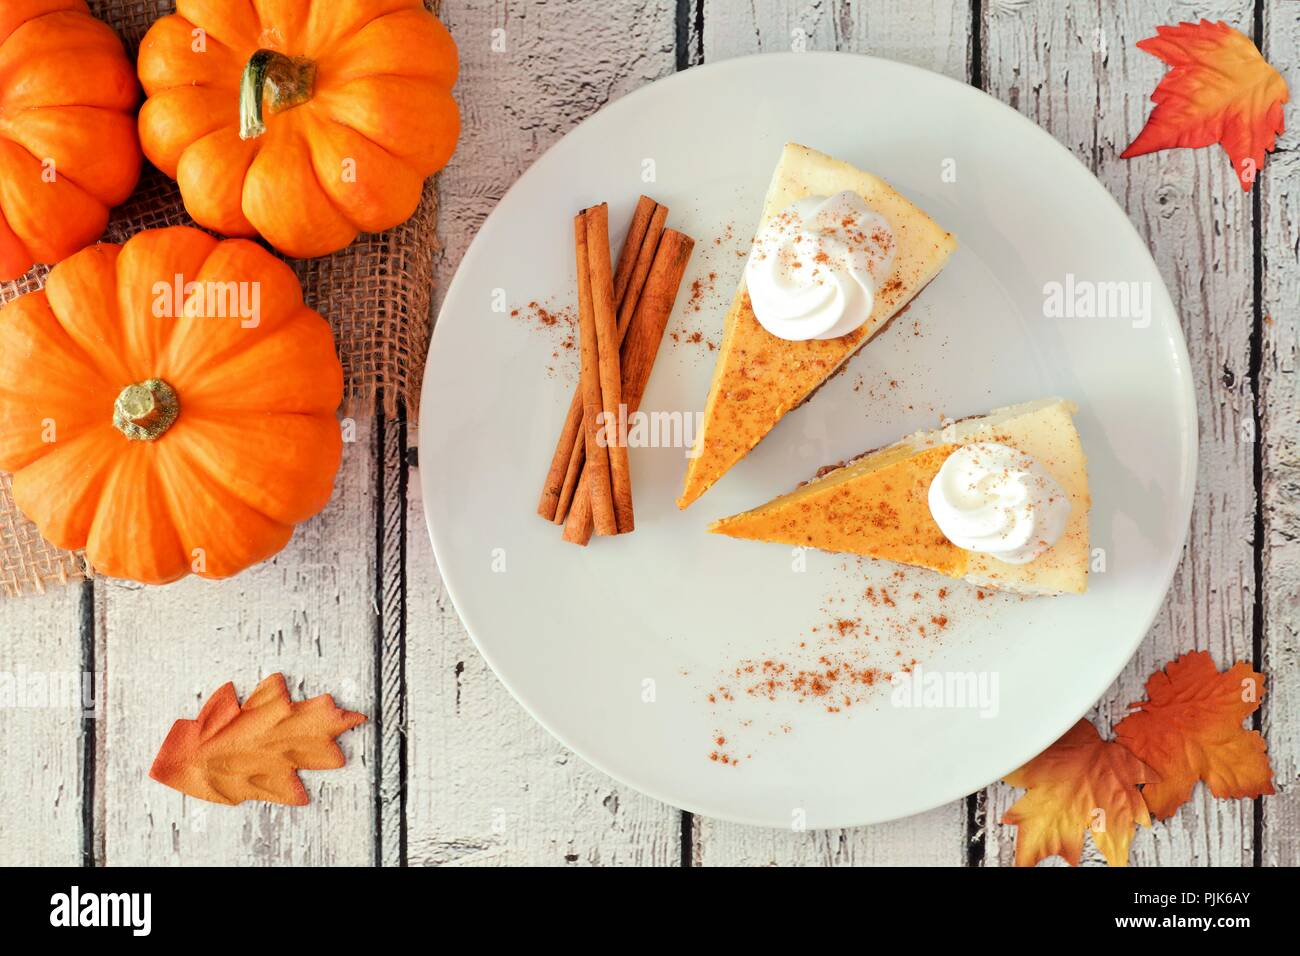 Plate with two slices of pumpkin cheesecake with whipped cream, overhead view on a white wood background - Stock Image